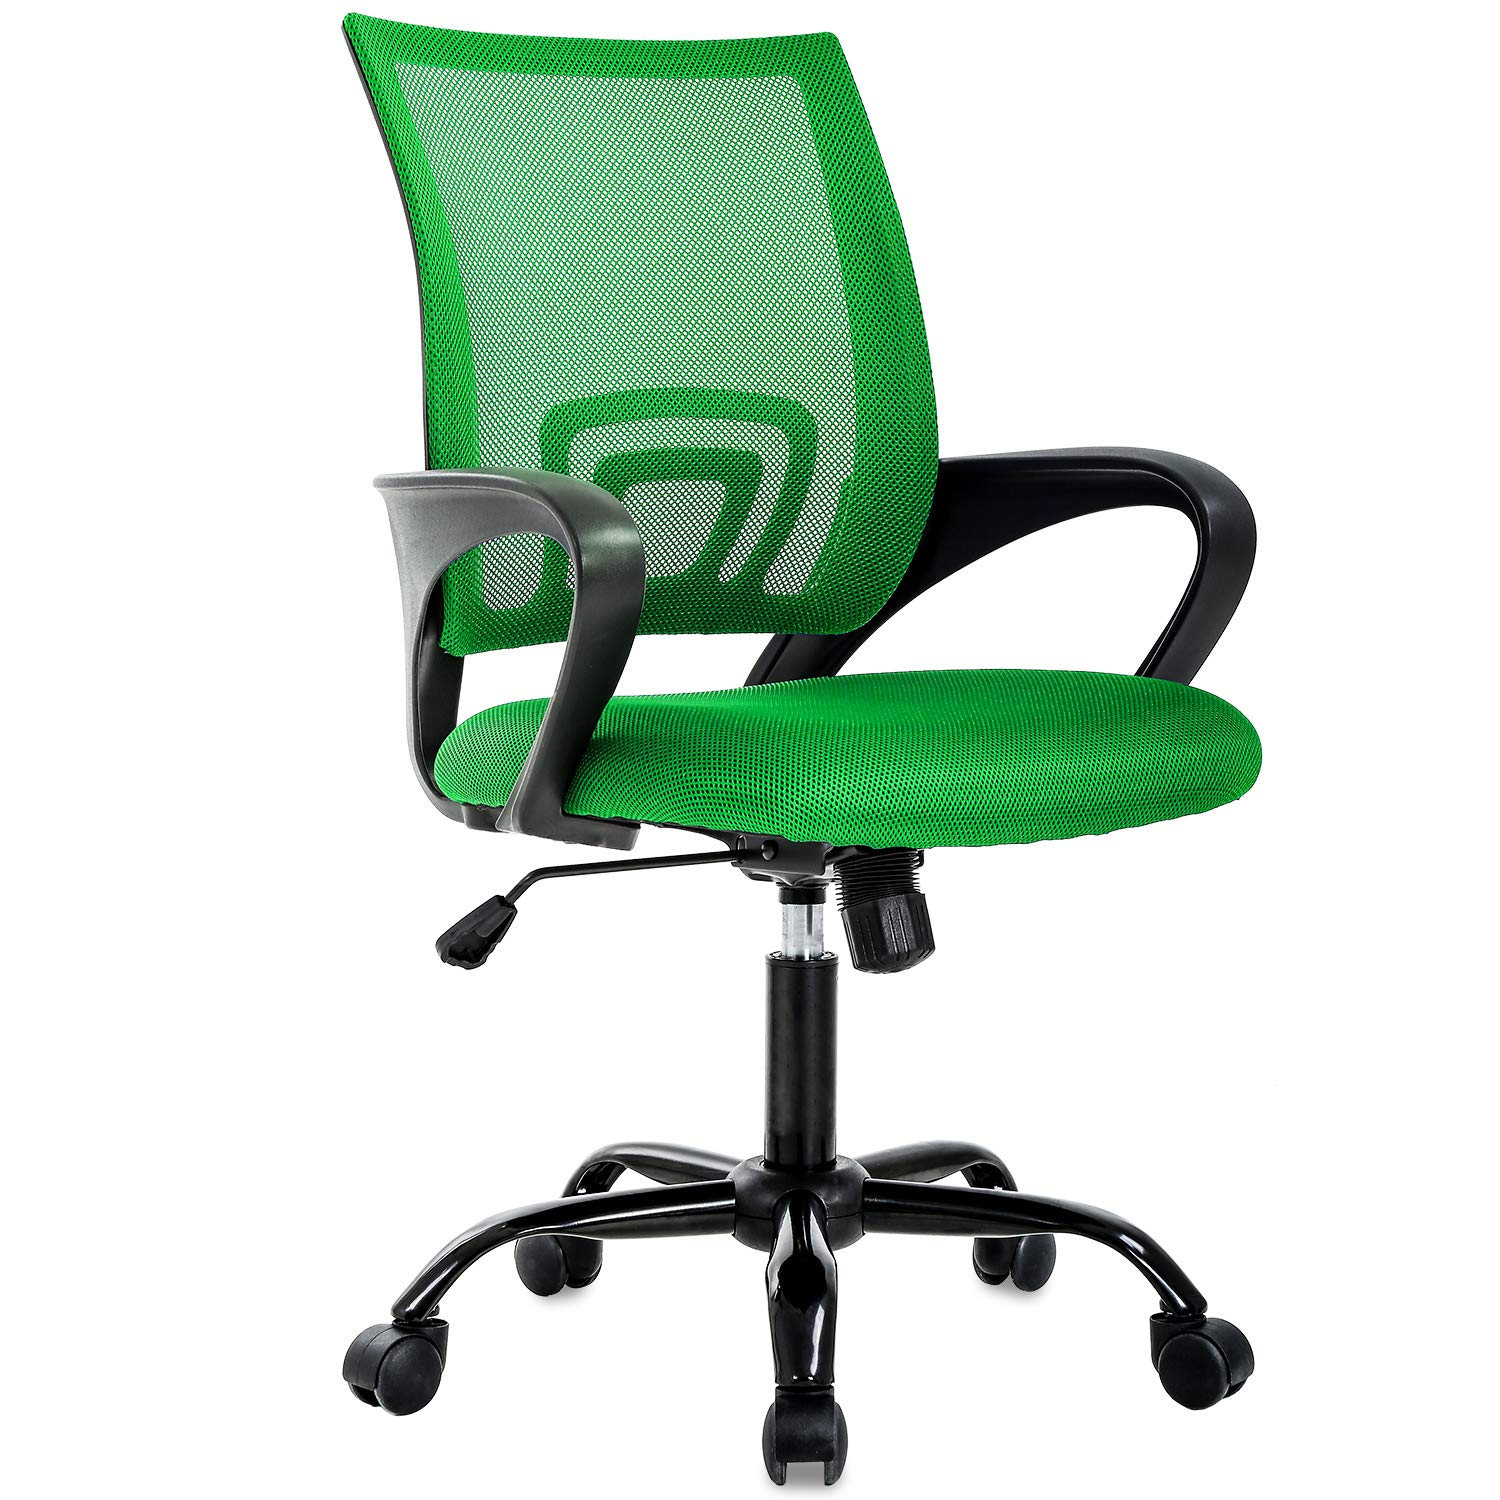 BestOffice Ergonomic Office Desk Mesh Executive Computer Chair Lumbar Support for Women Men, Green